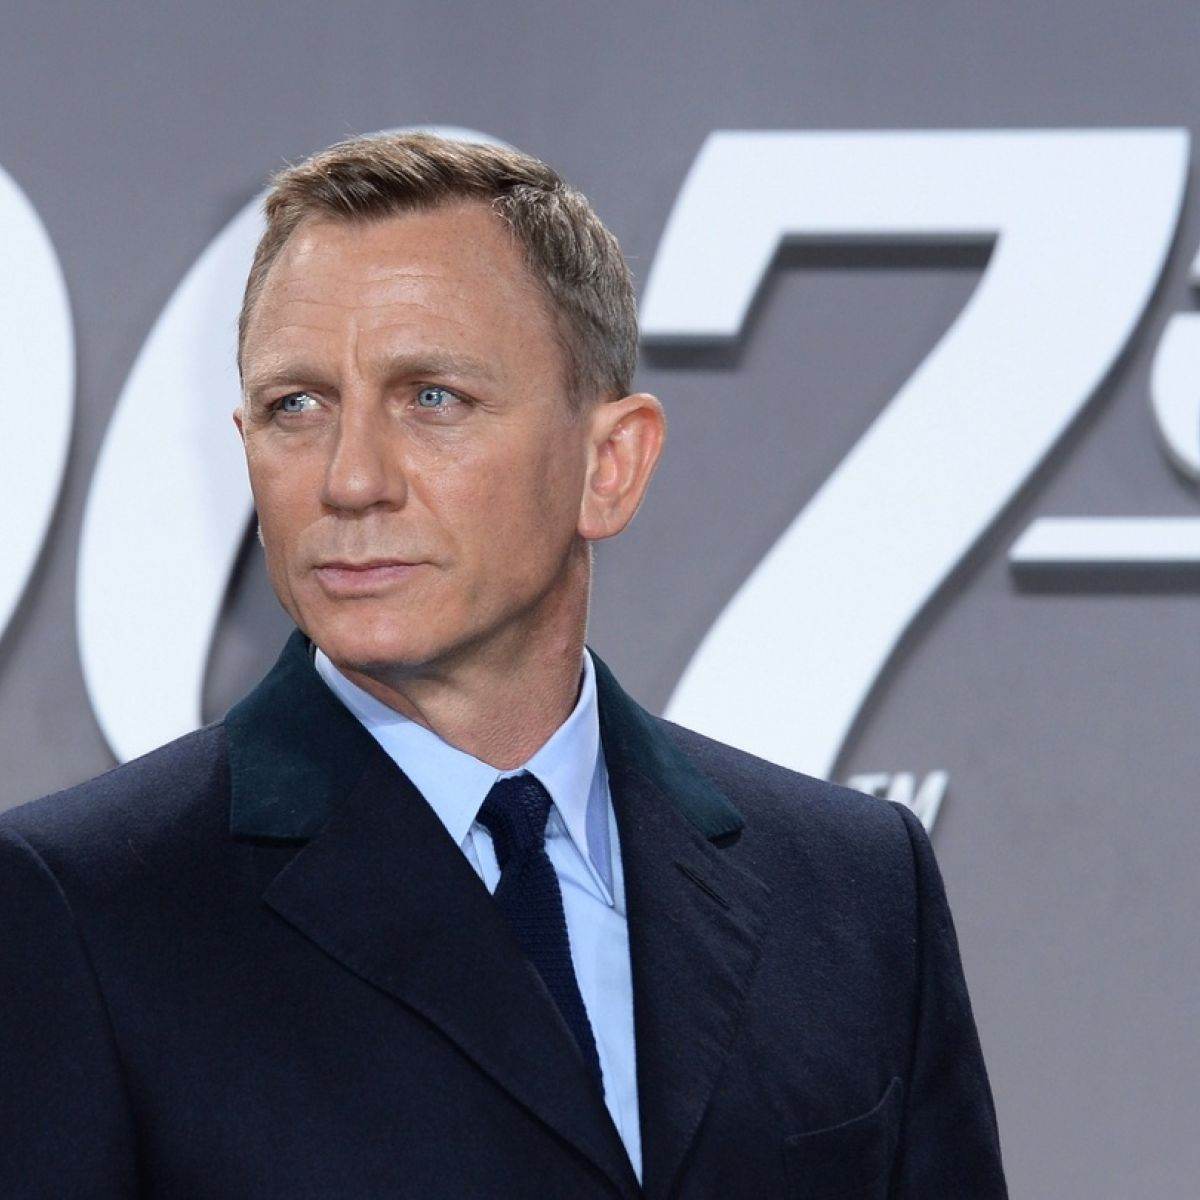 20 Best James Bond Movies Of All Time